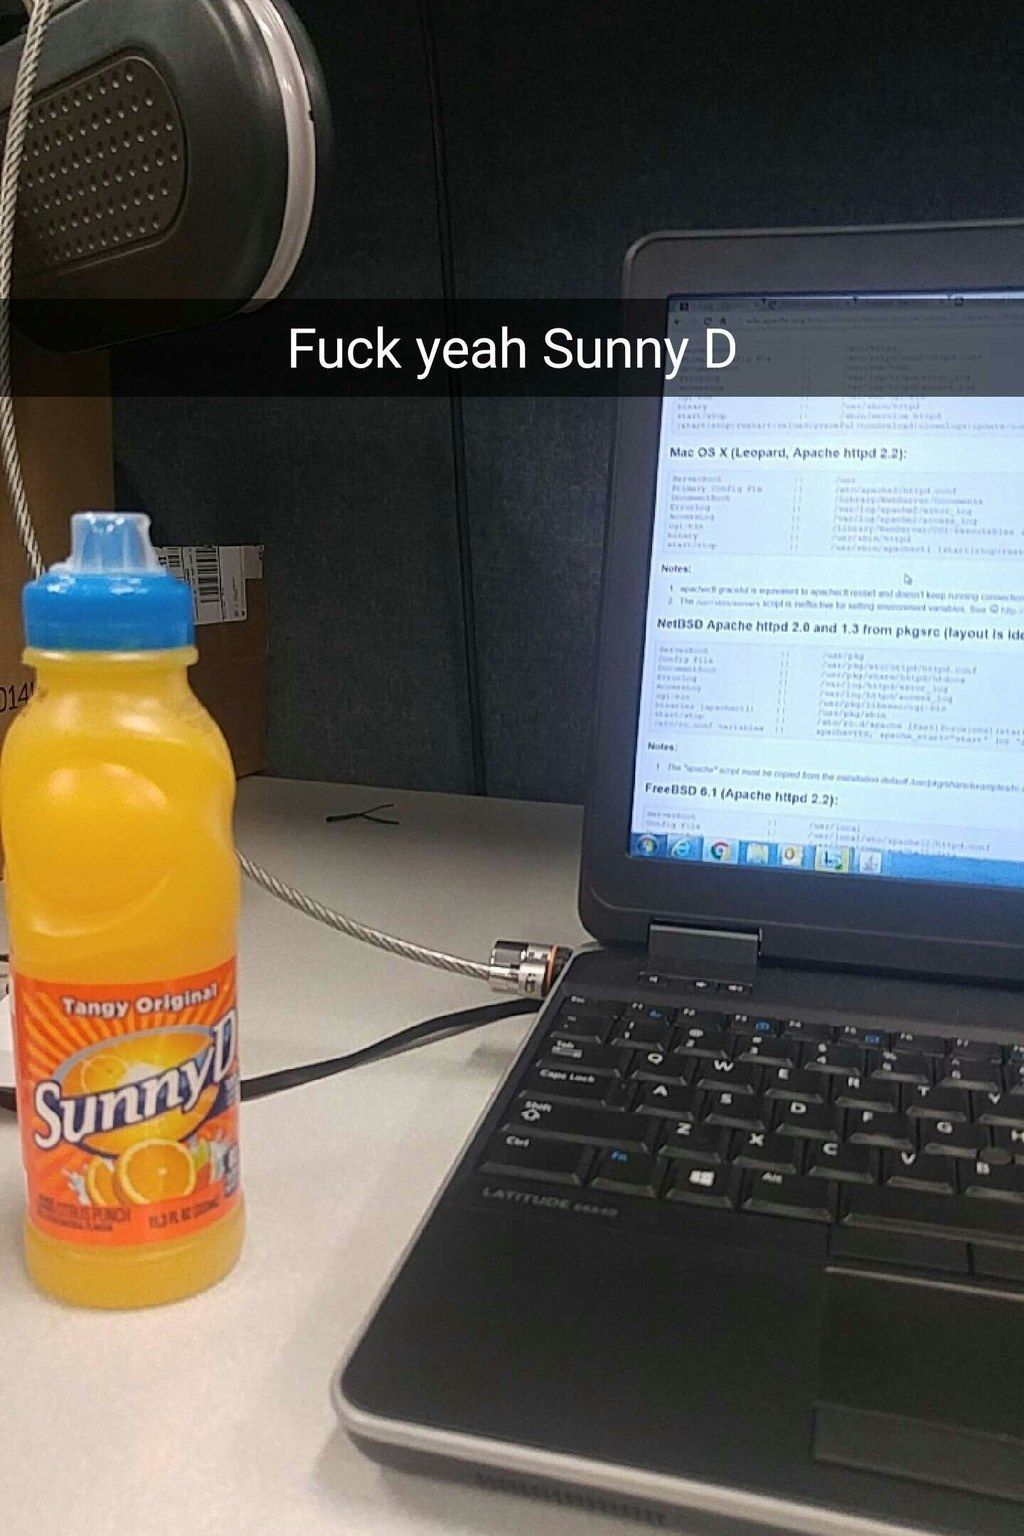 The 25 Funniest Things Ever Snapchatted Dry sense of